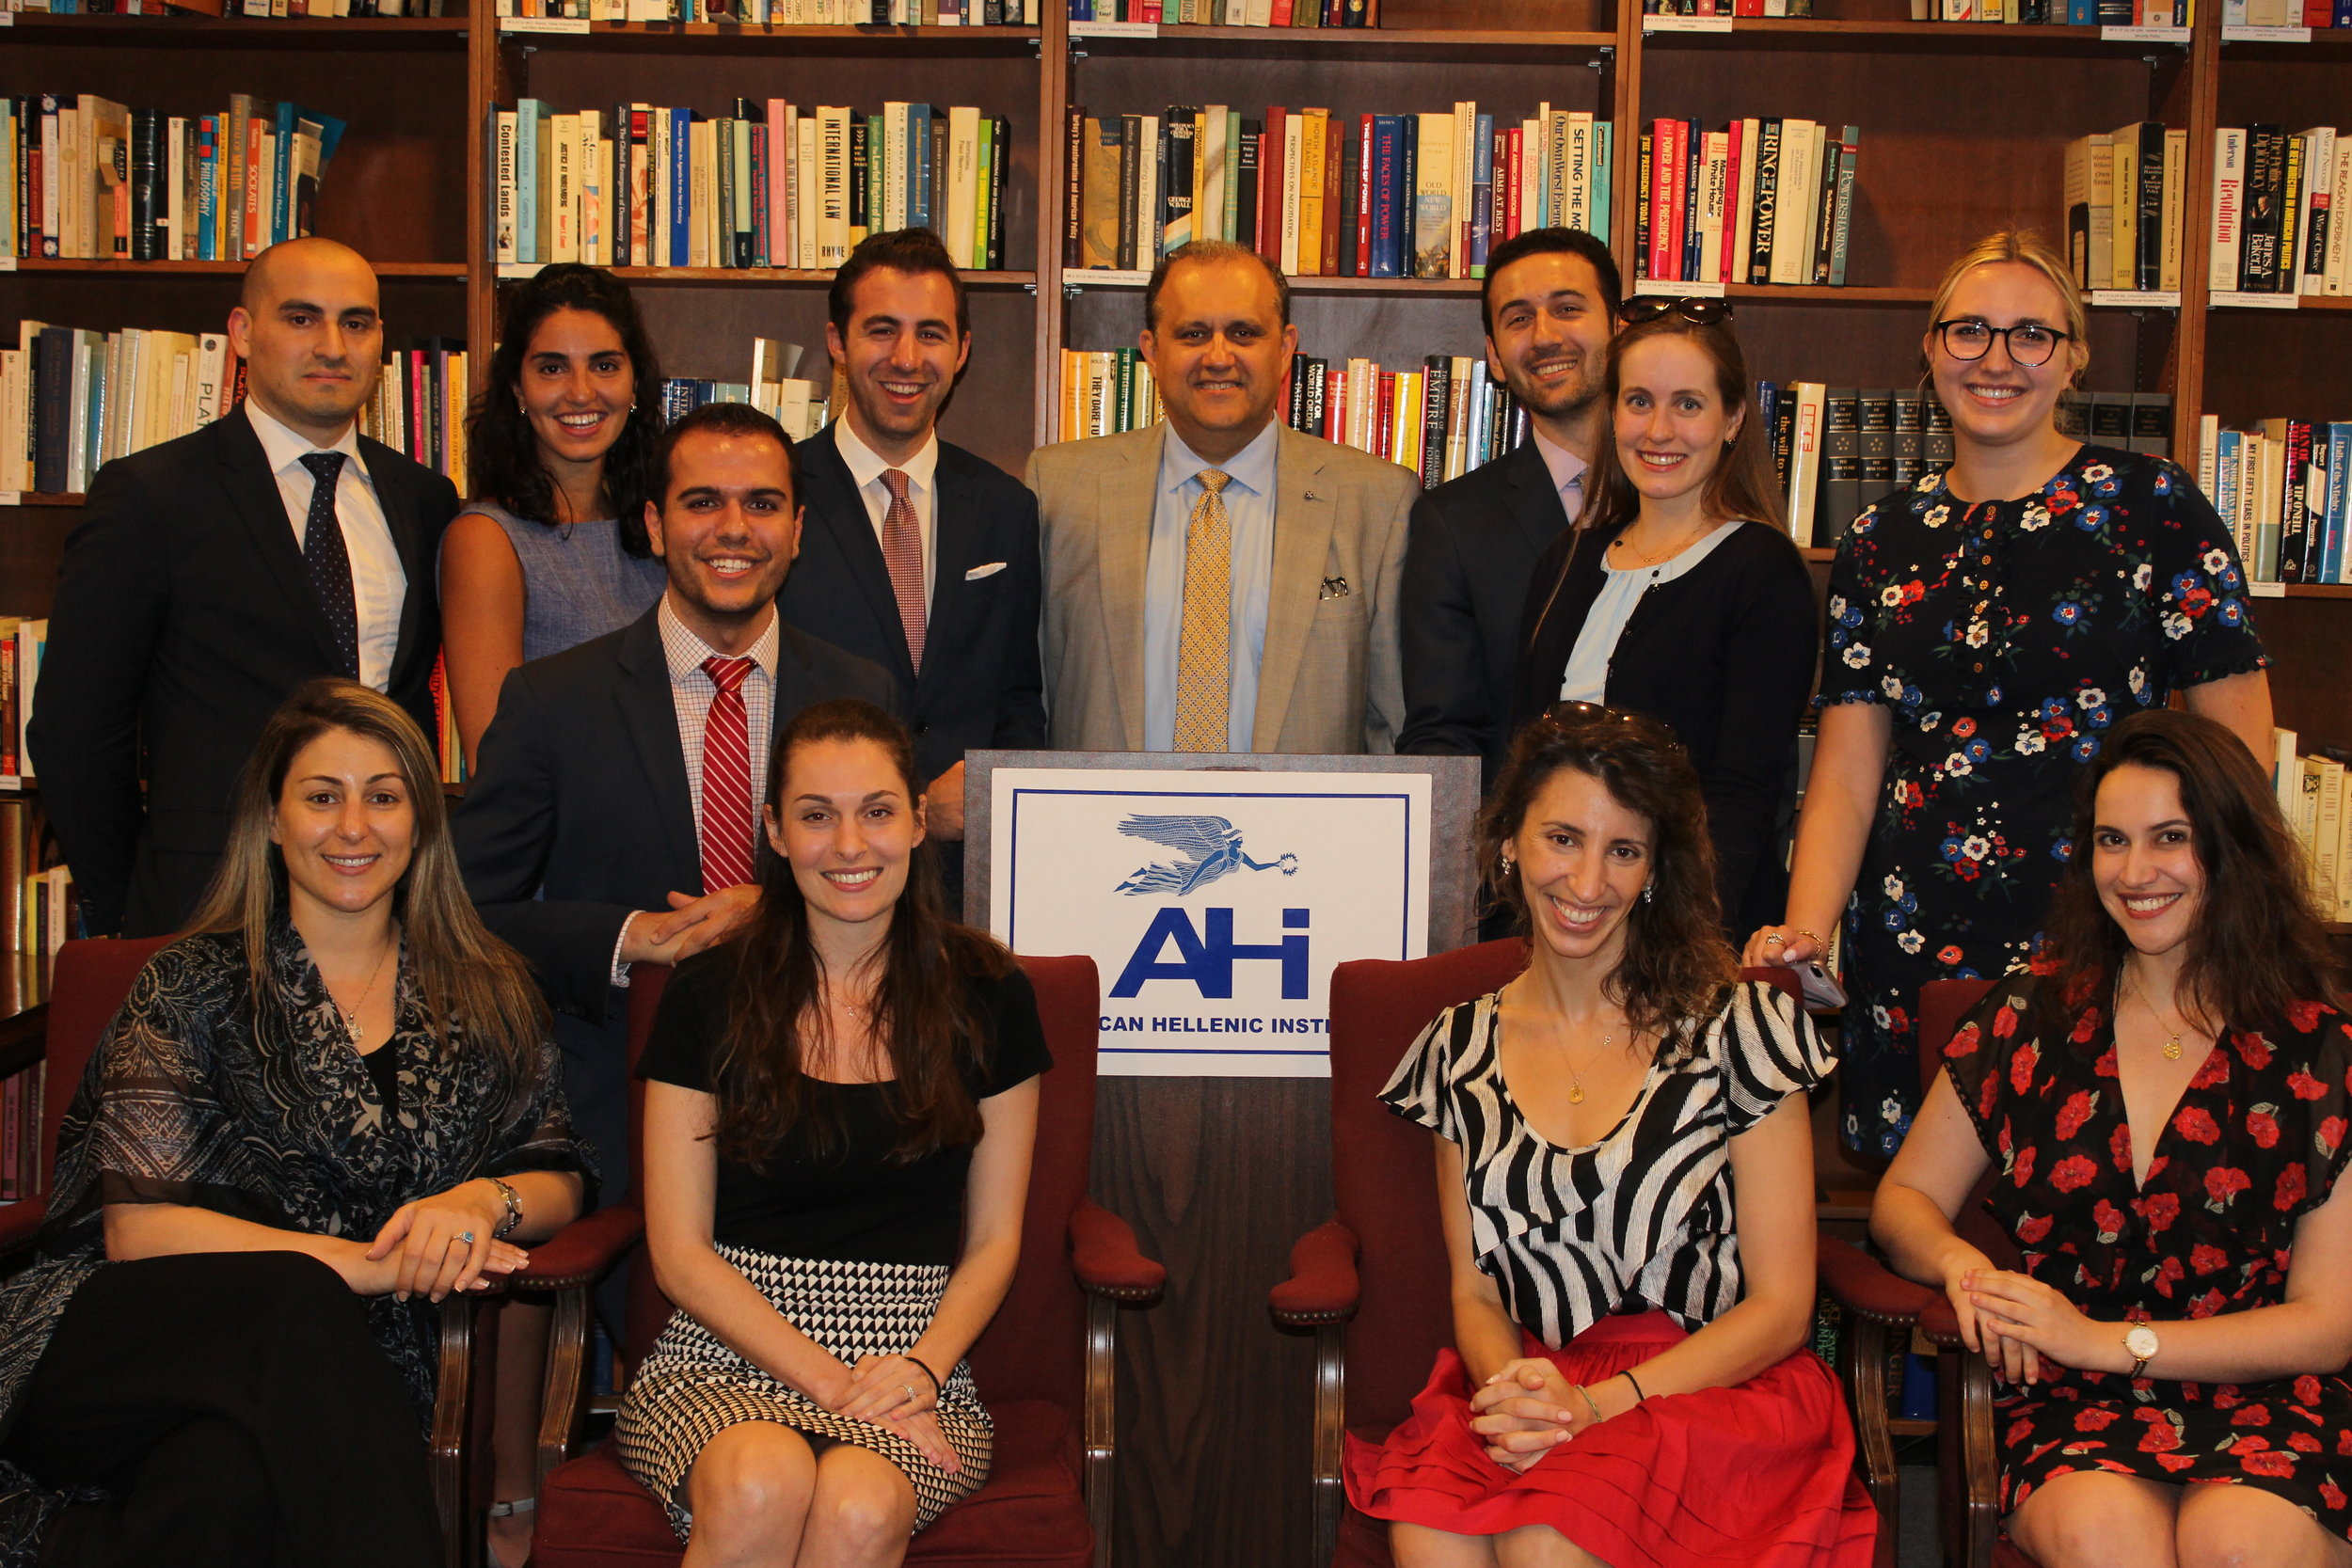 Alumni of the AHIF student foreign policy trip gather at the reunion to kick off the tenth annual trip.